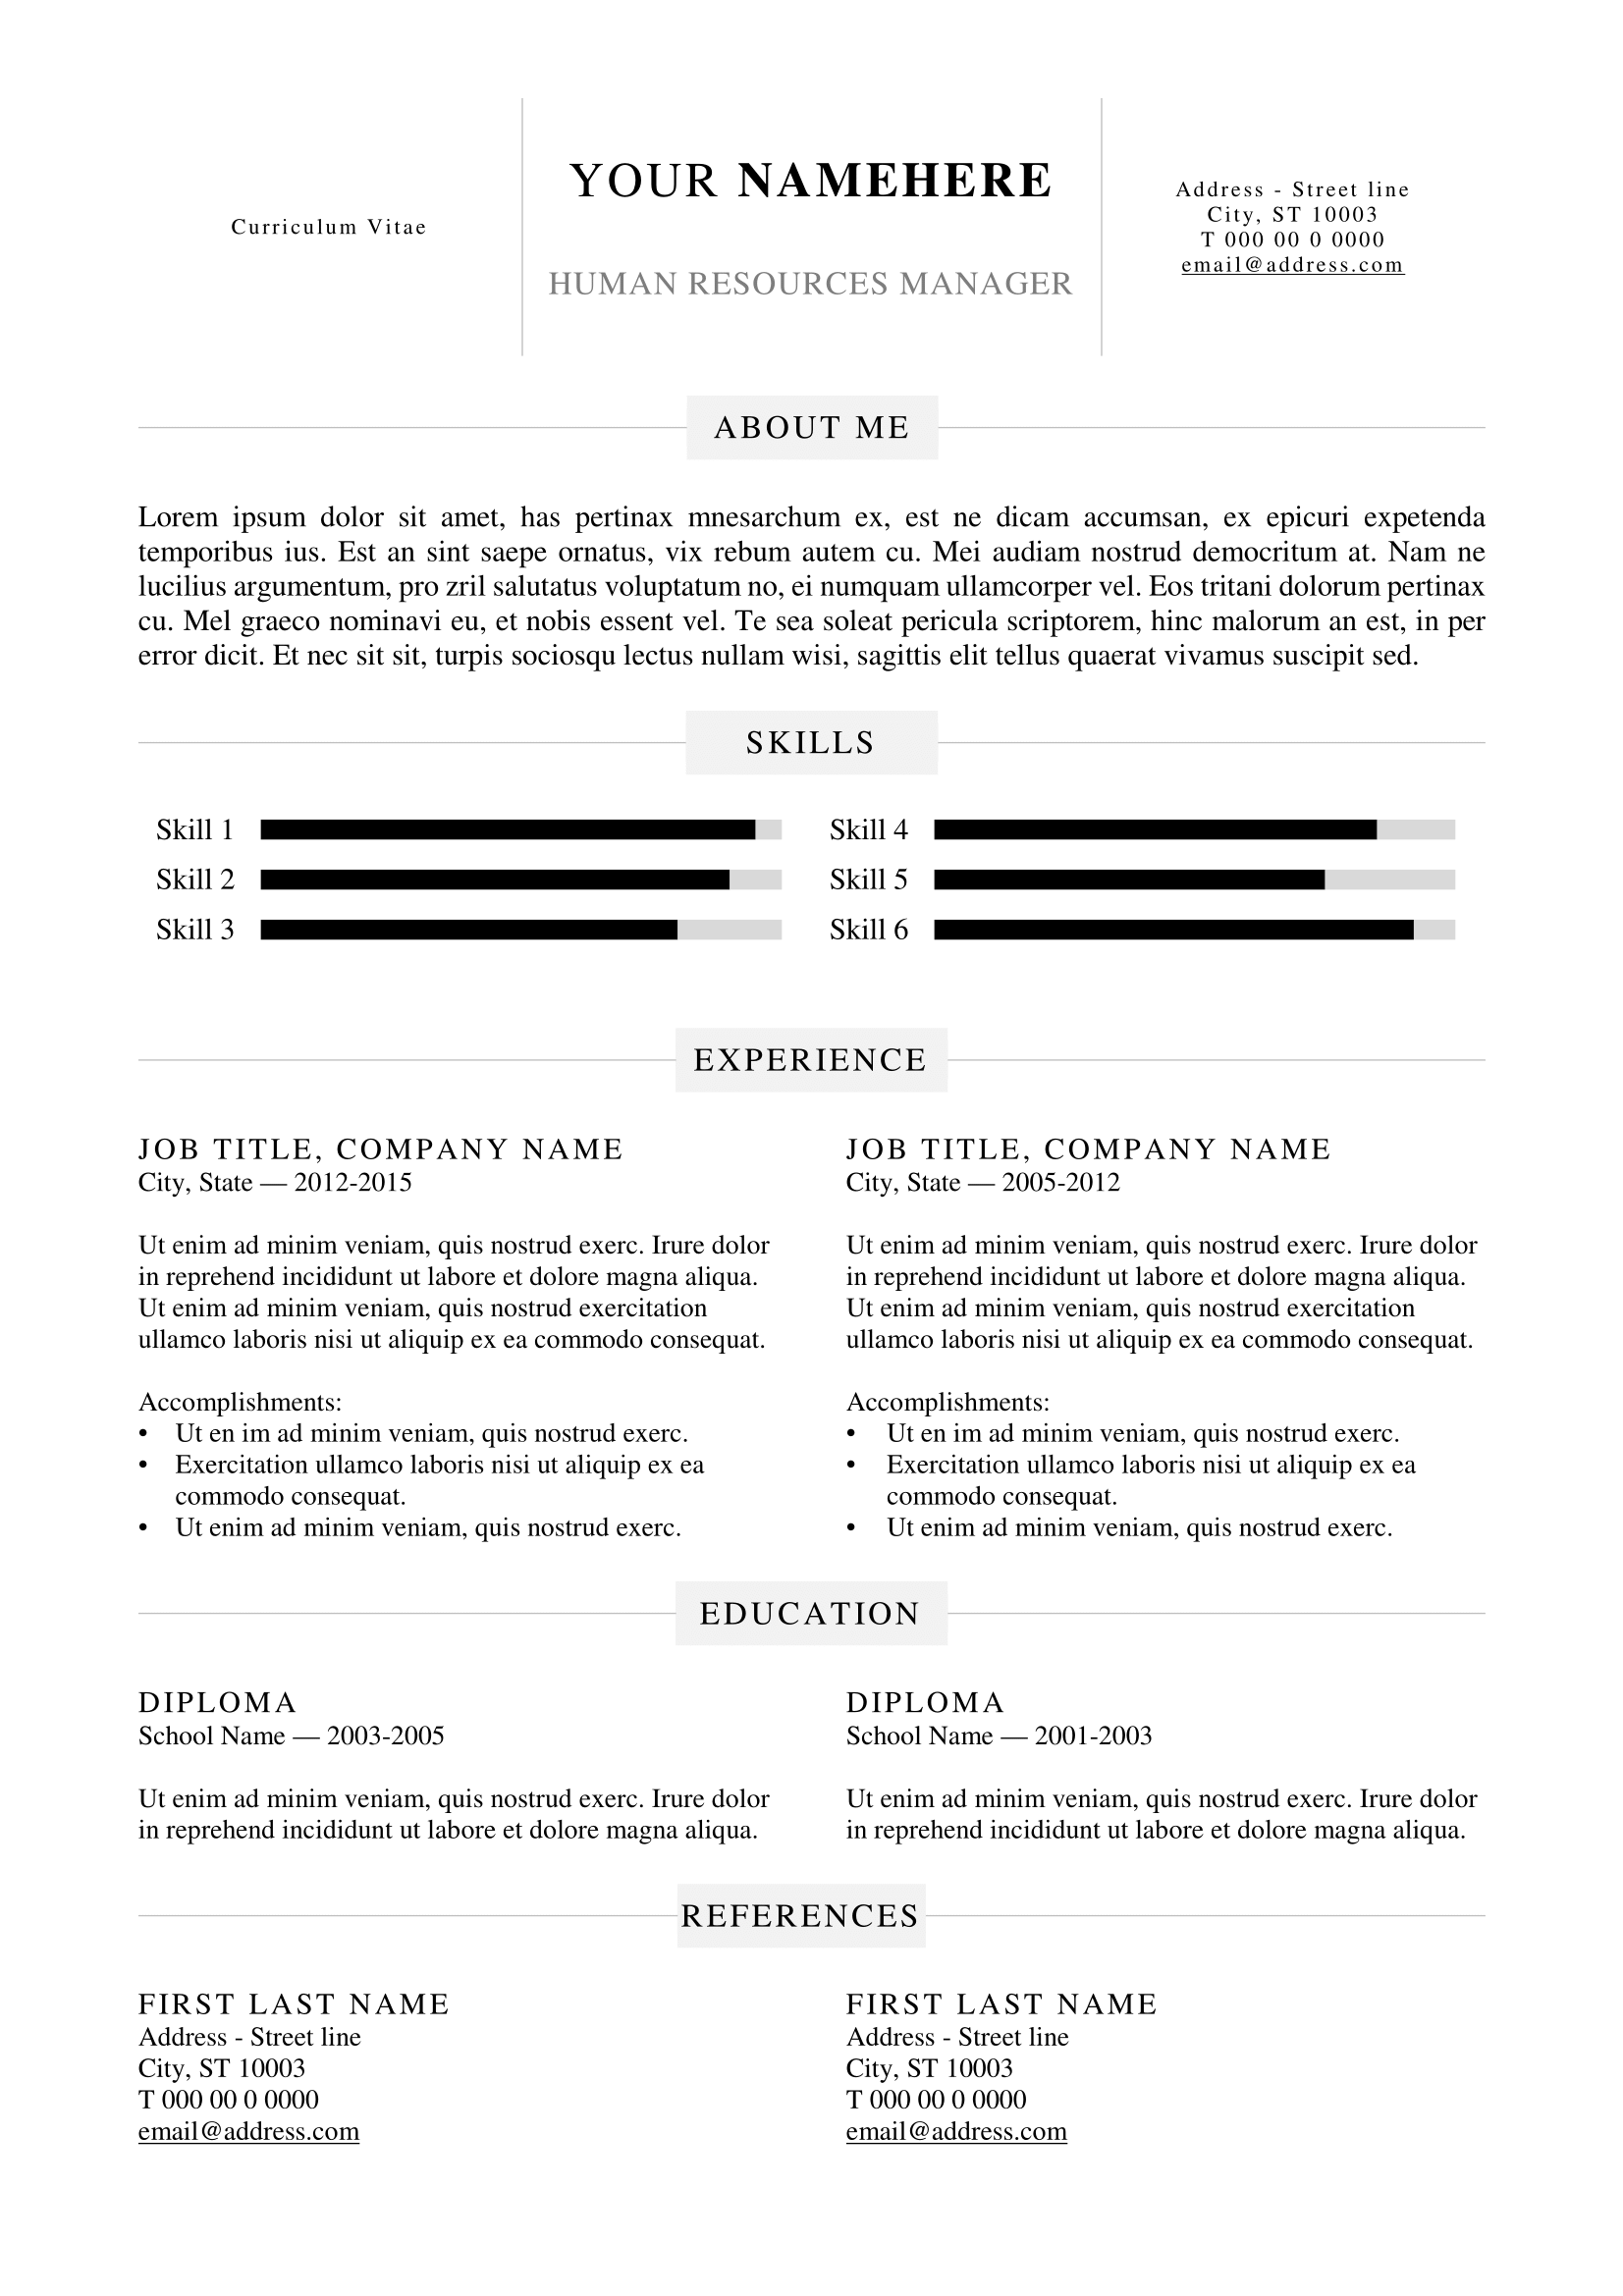 Kallio - Free Simple Resume Template For Word (Docx)